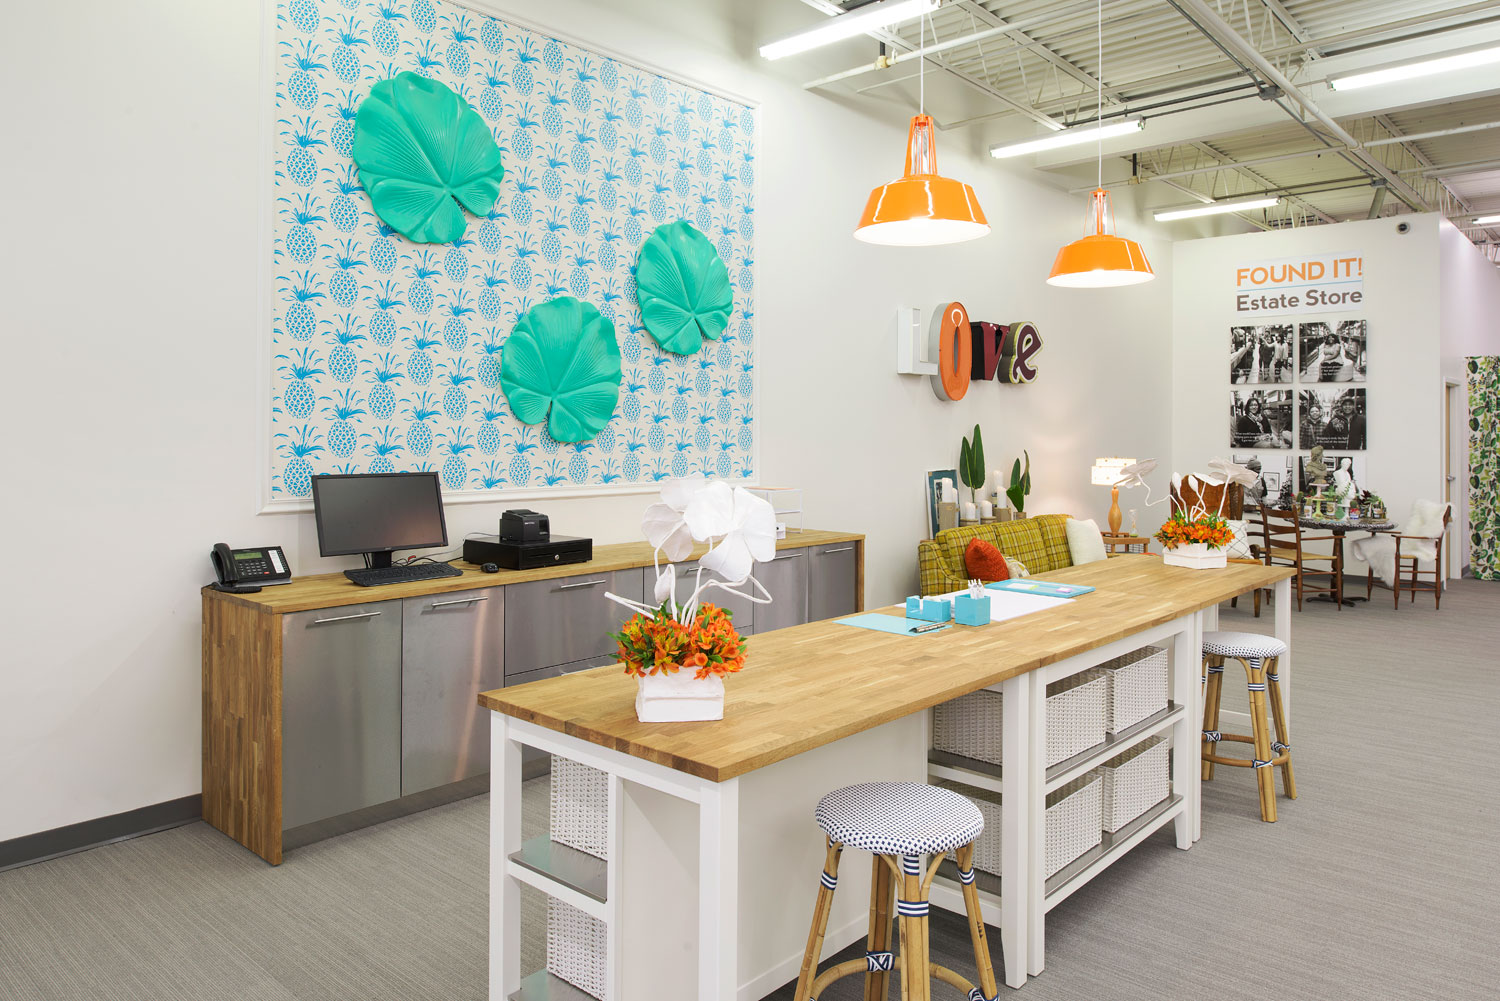 Lucy Interior Design, Design for a Difference - Bridging Found It! Estate Store